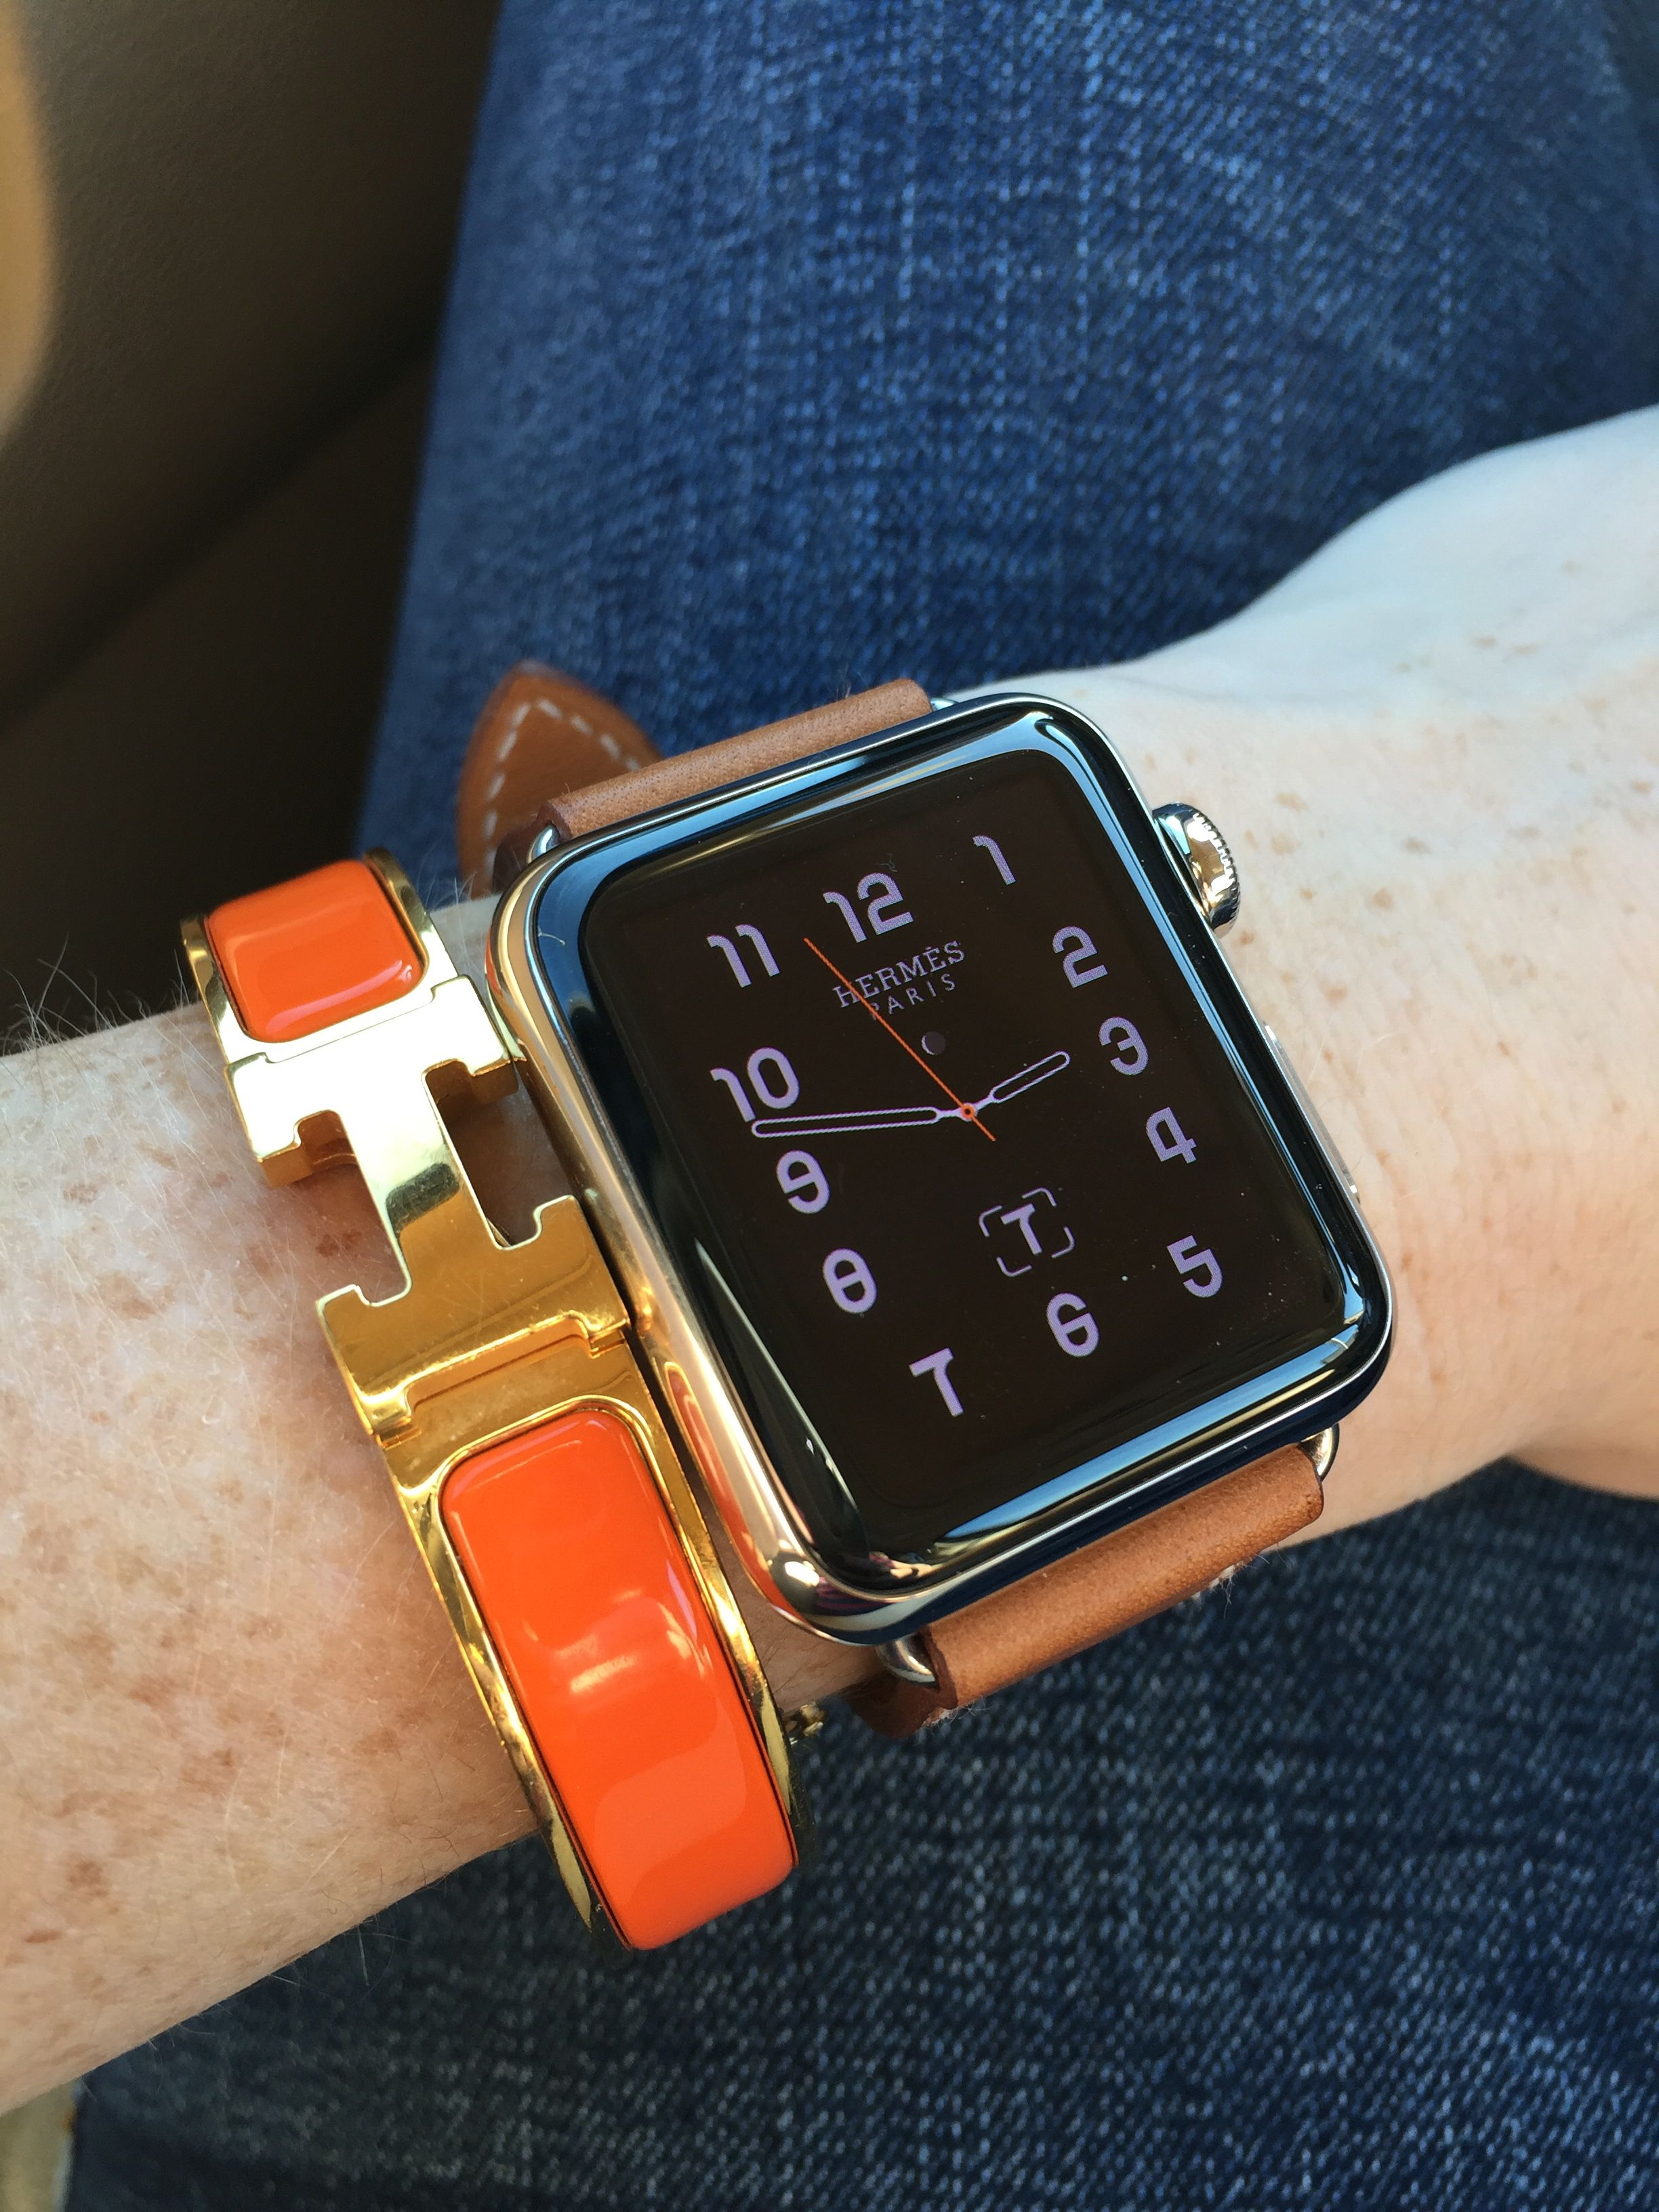 9a008f0739a Arm candy win the new Hermes Apple Watch.